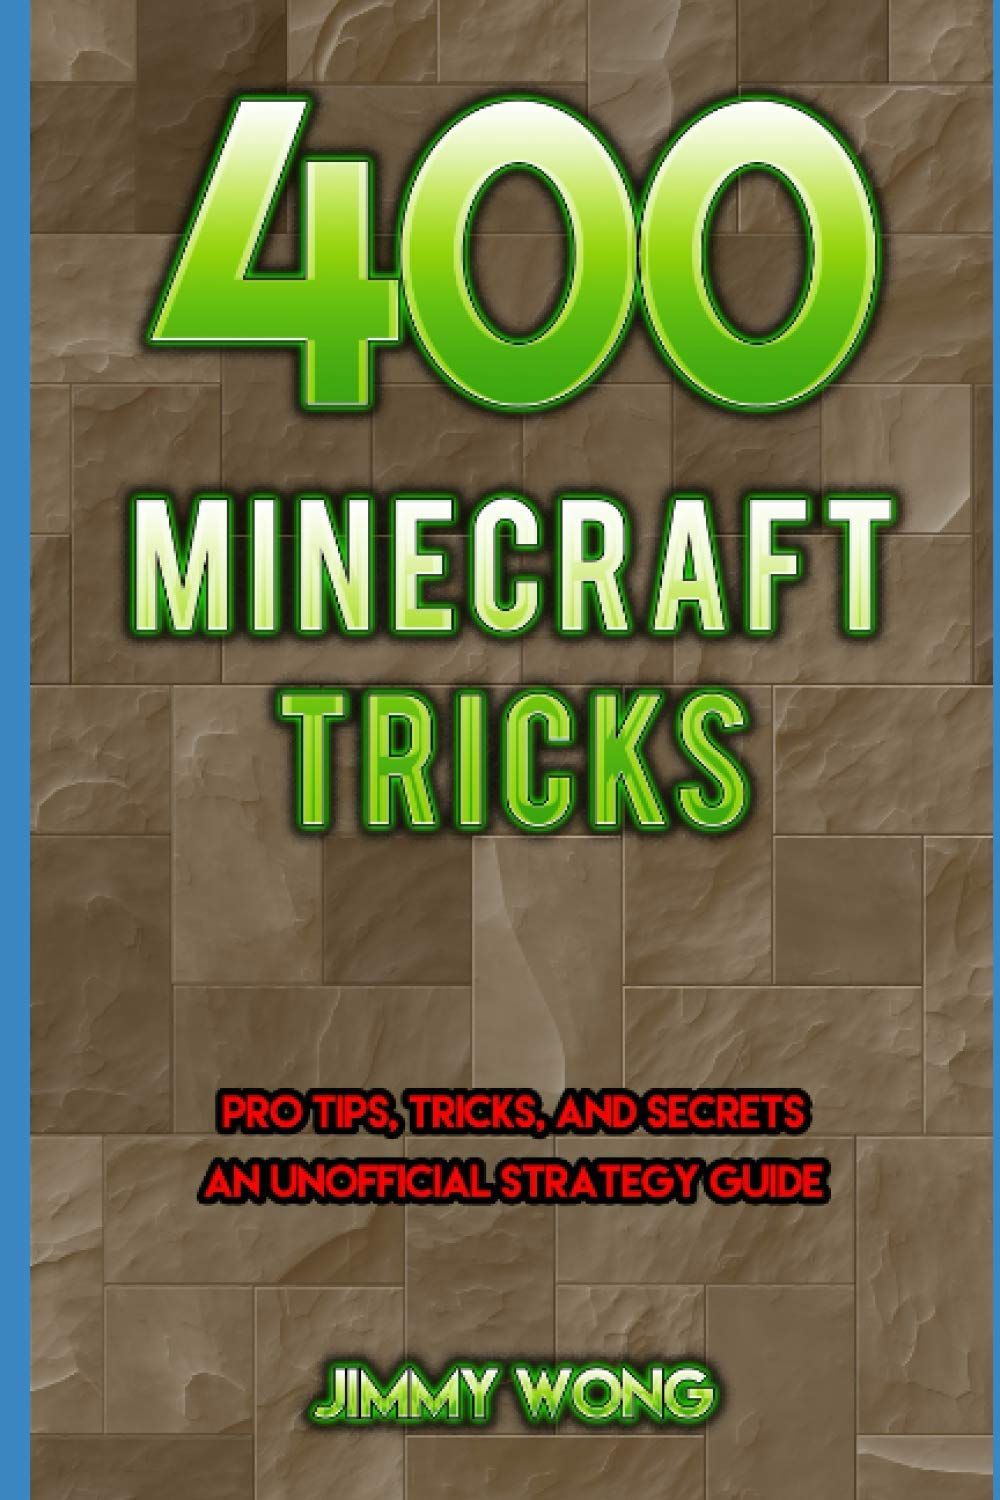 400 Minecraft Tricks: Pro Tips, Tricks, And Secrets An Unofficial Strategy Guide